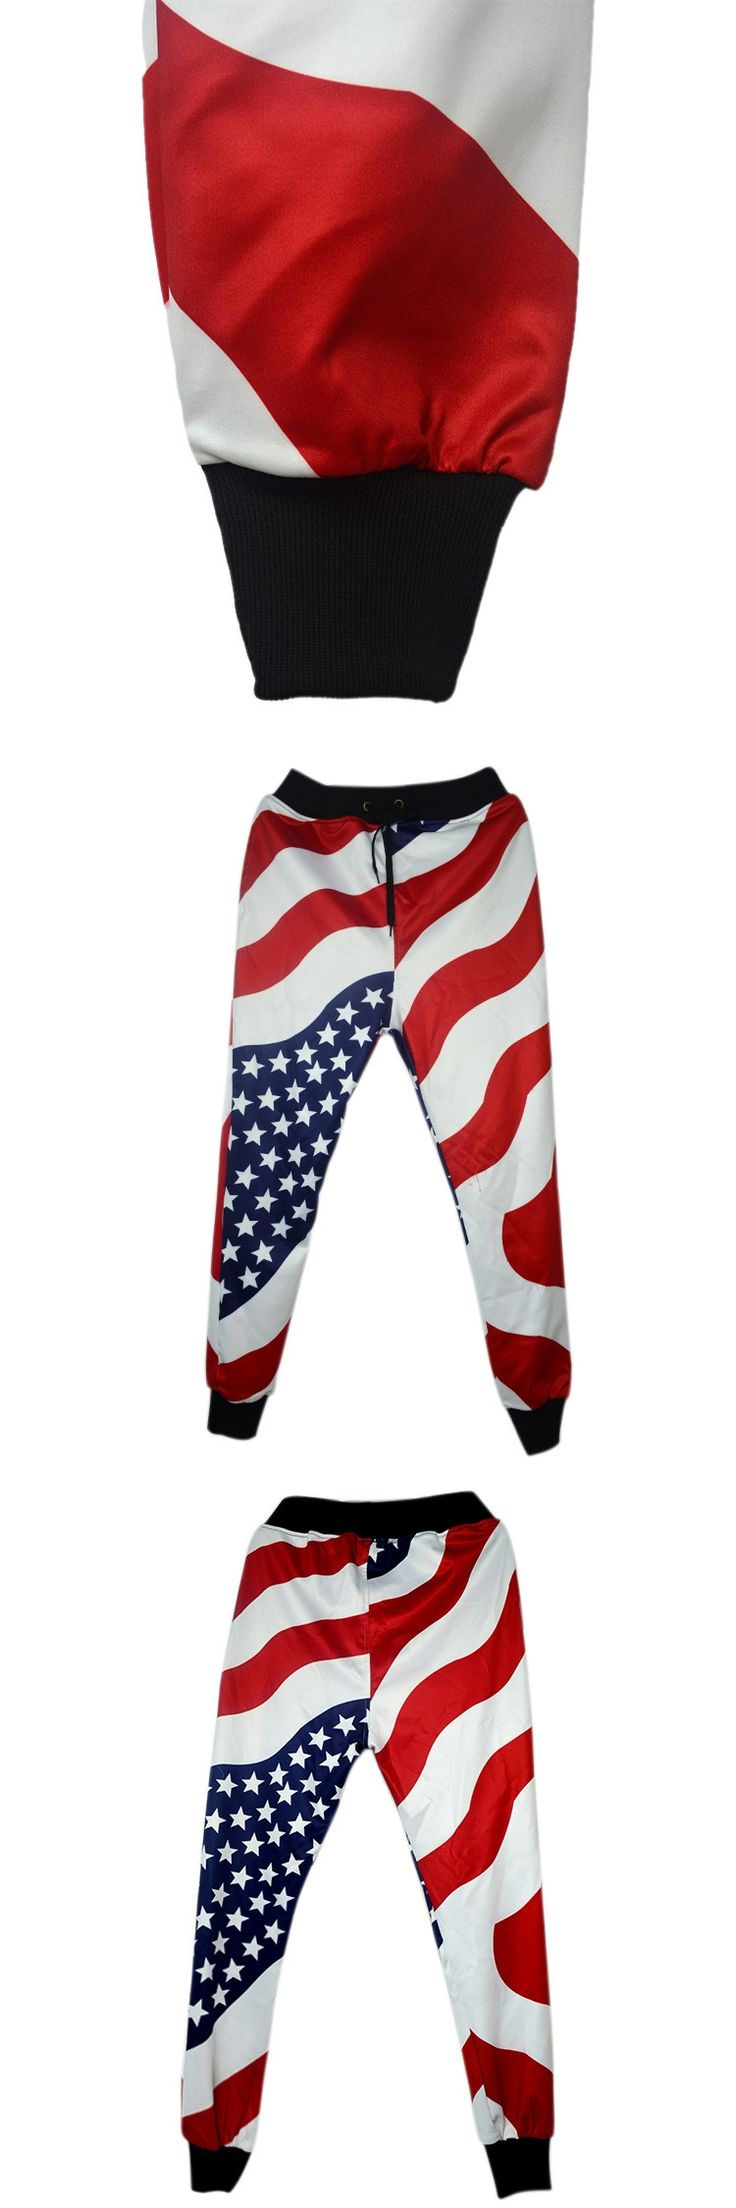 Spring Autumn mens Clothing  Hip Hop Dance trousers American Flag Stars Stripes Print casual mens joggers pants